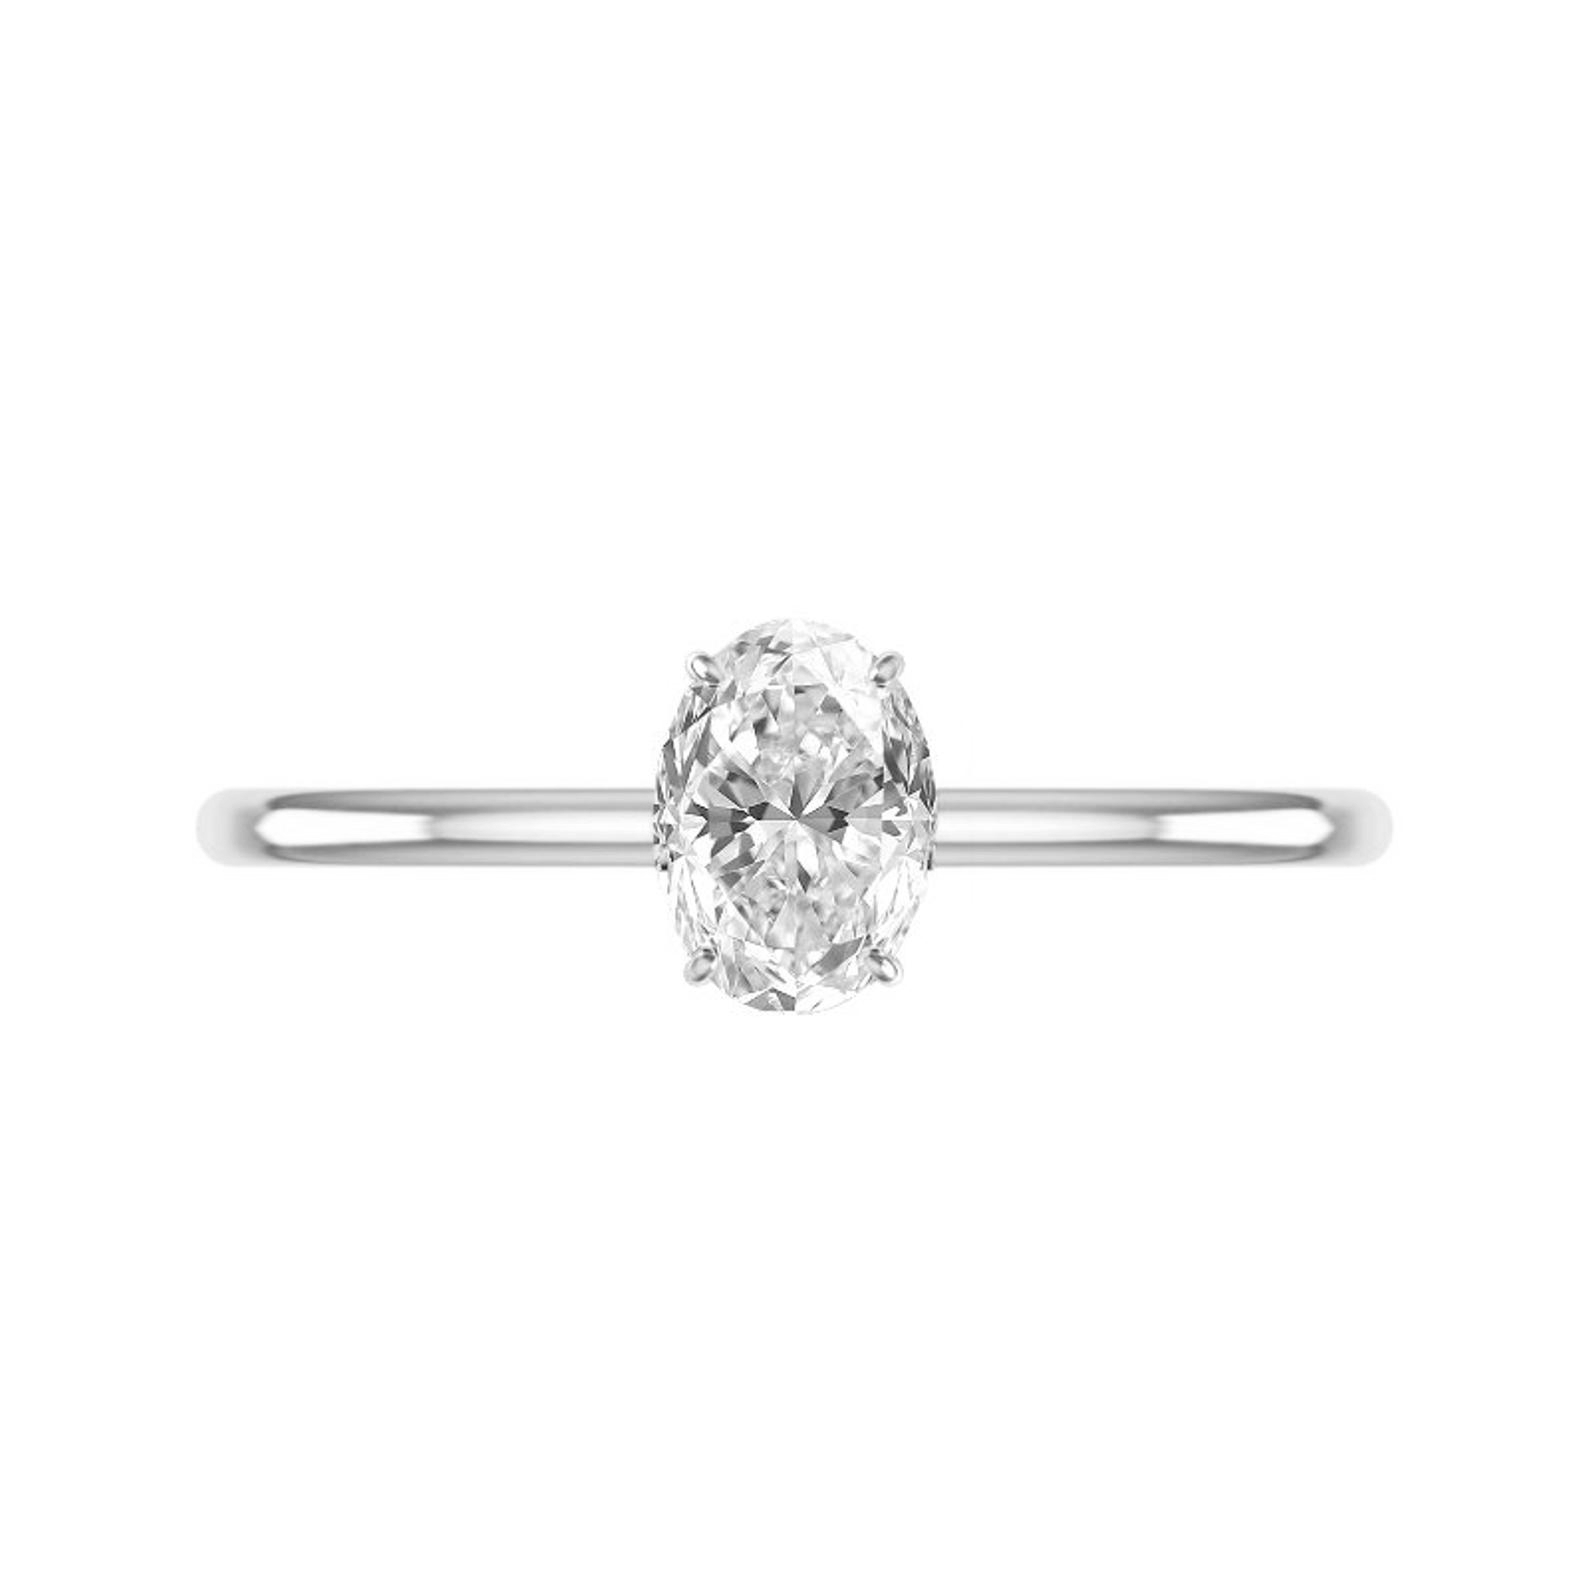 1 Carat Oval Moissanite Solitaire Ring